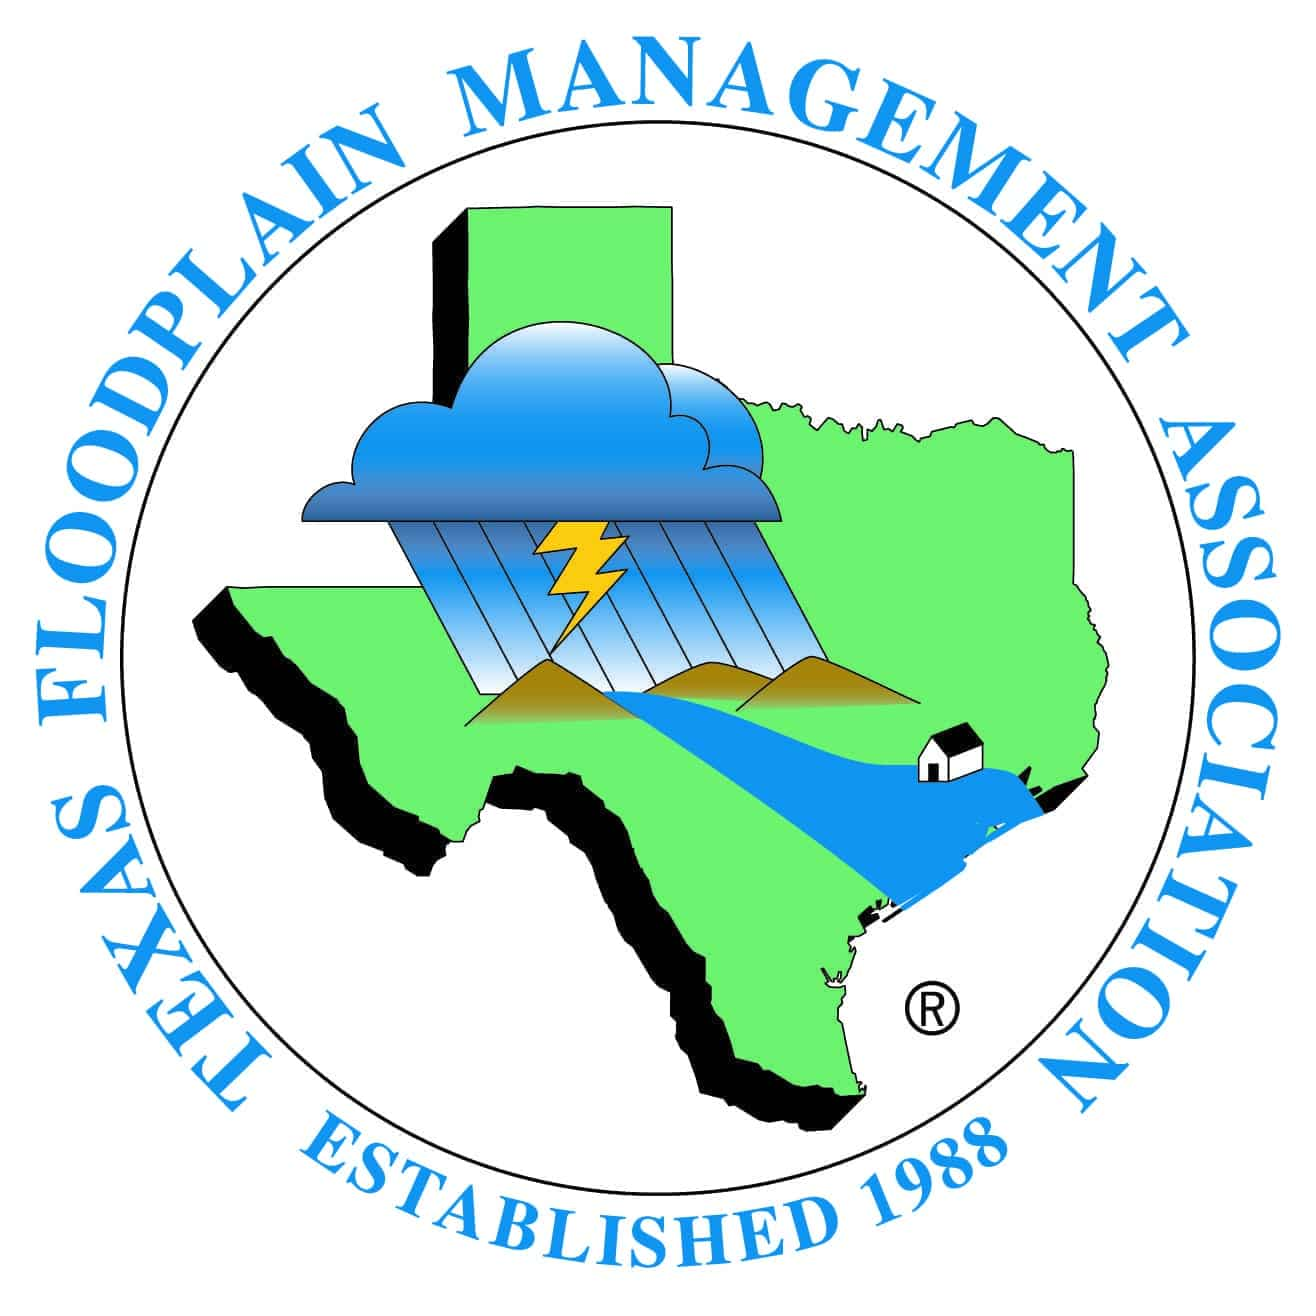 Texas Floodplain Management Association